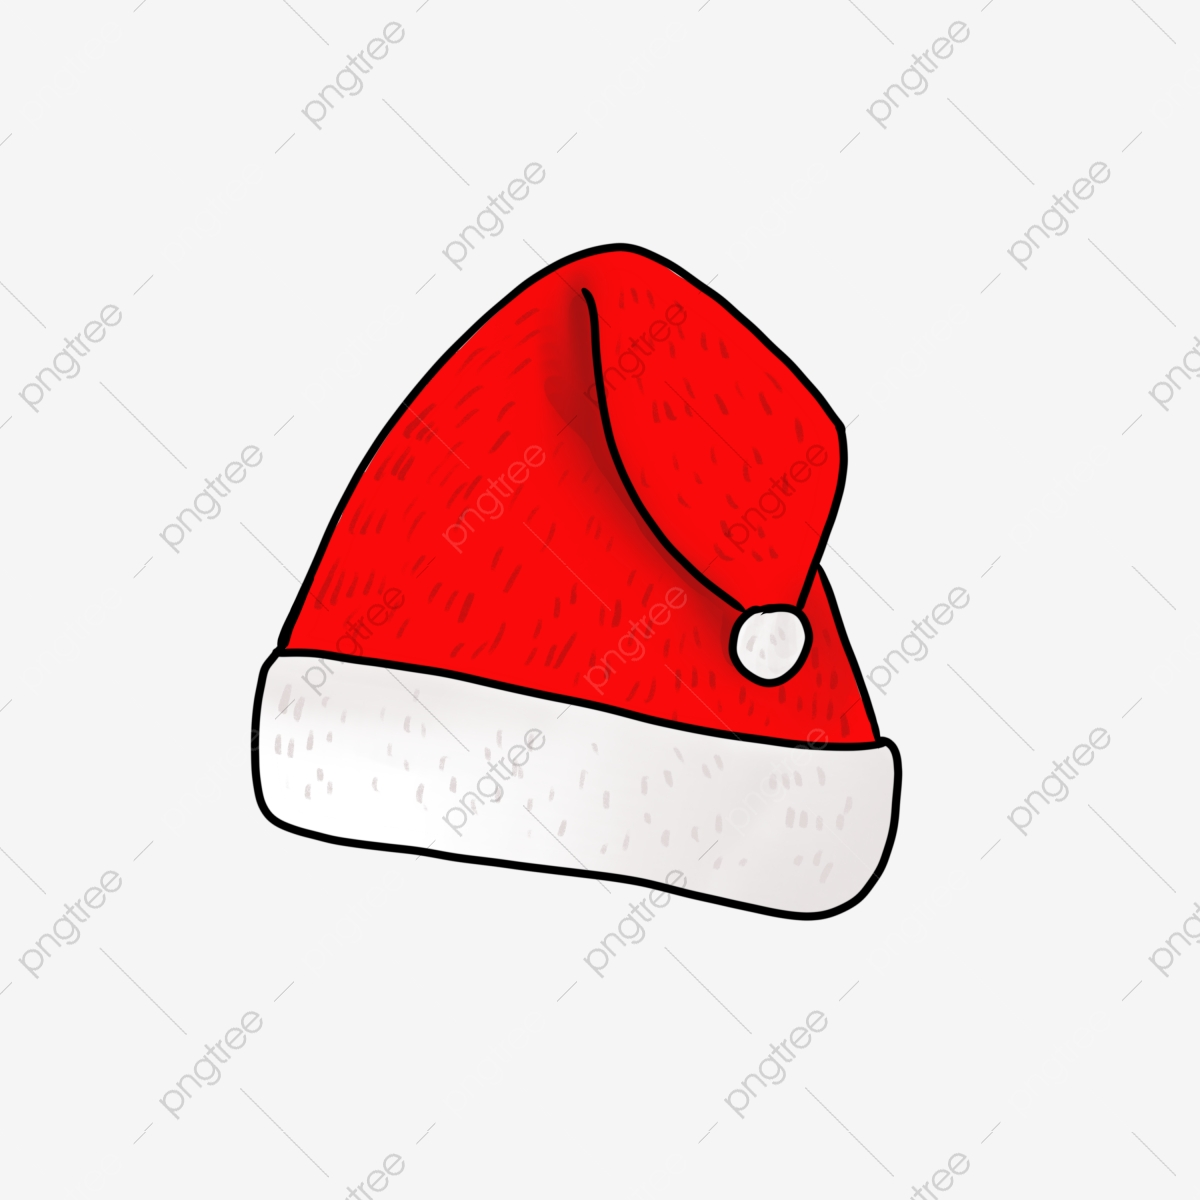 Christmas Hat Drawing Png.Red Christmas Hat Illustration Red Santa Hat Beautiful